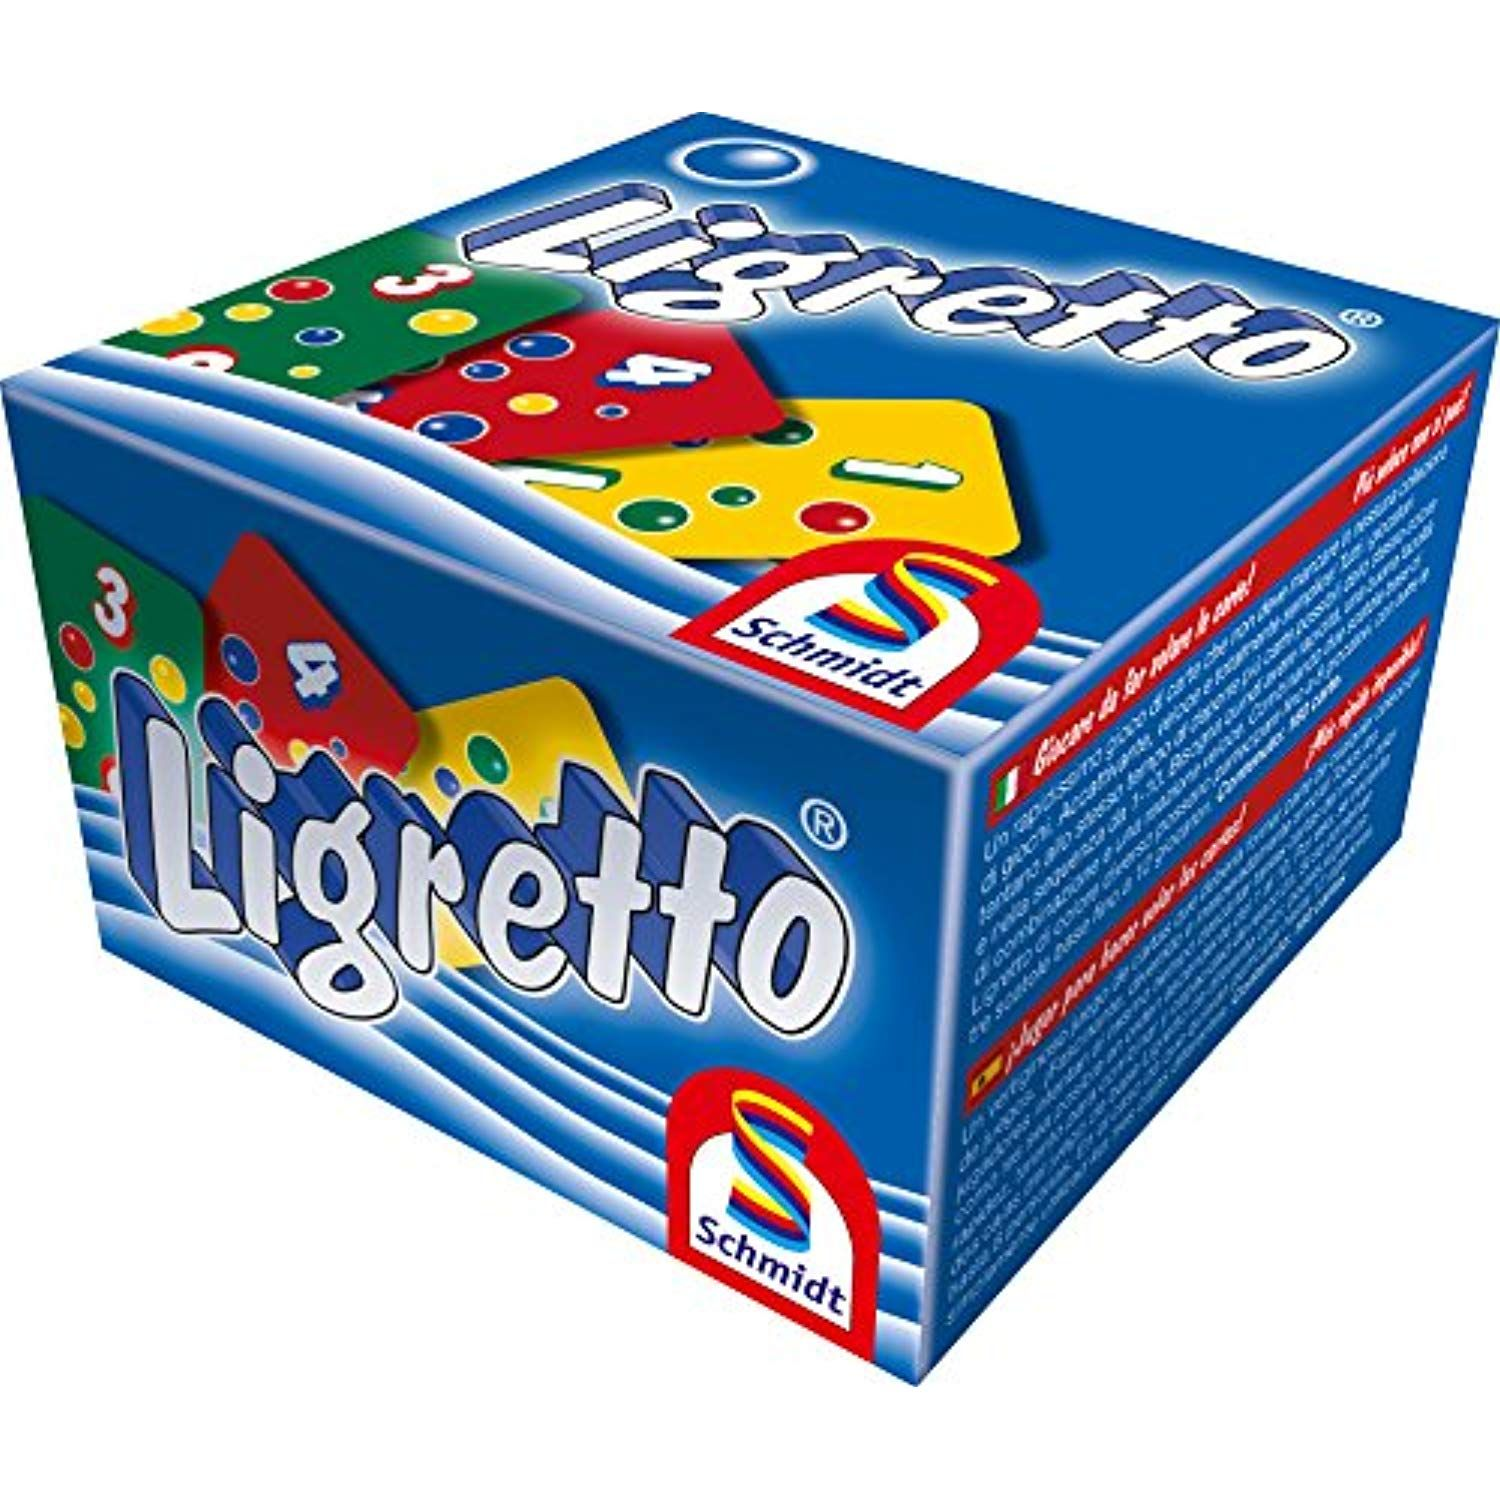 Ligretto Blue Fast Card Game by Schmidt For all the